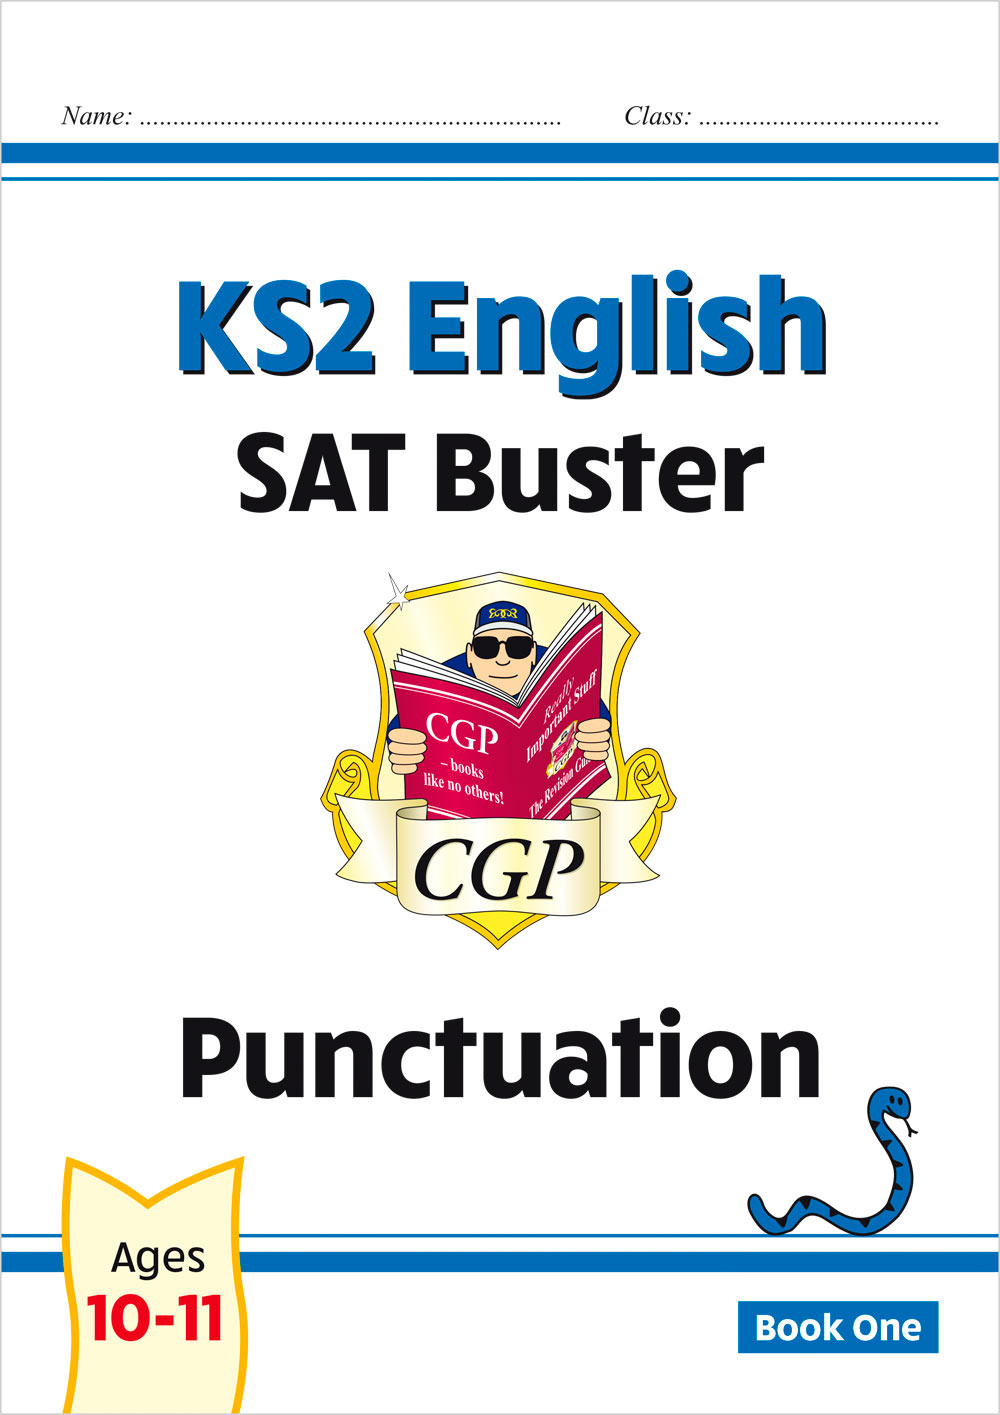 E6P24 - New KS2 English SAT Buster: Punctuation - Book 1